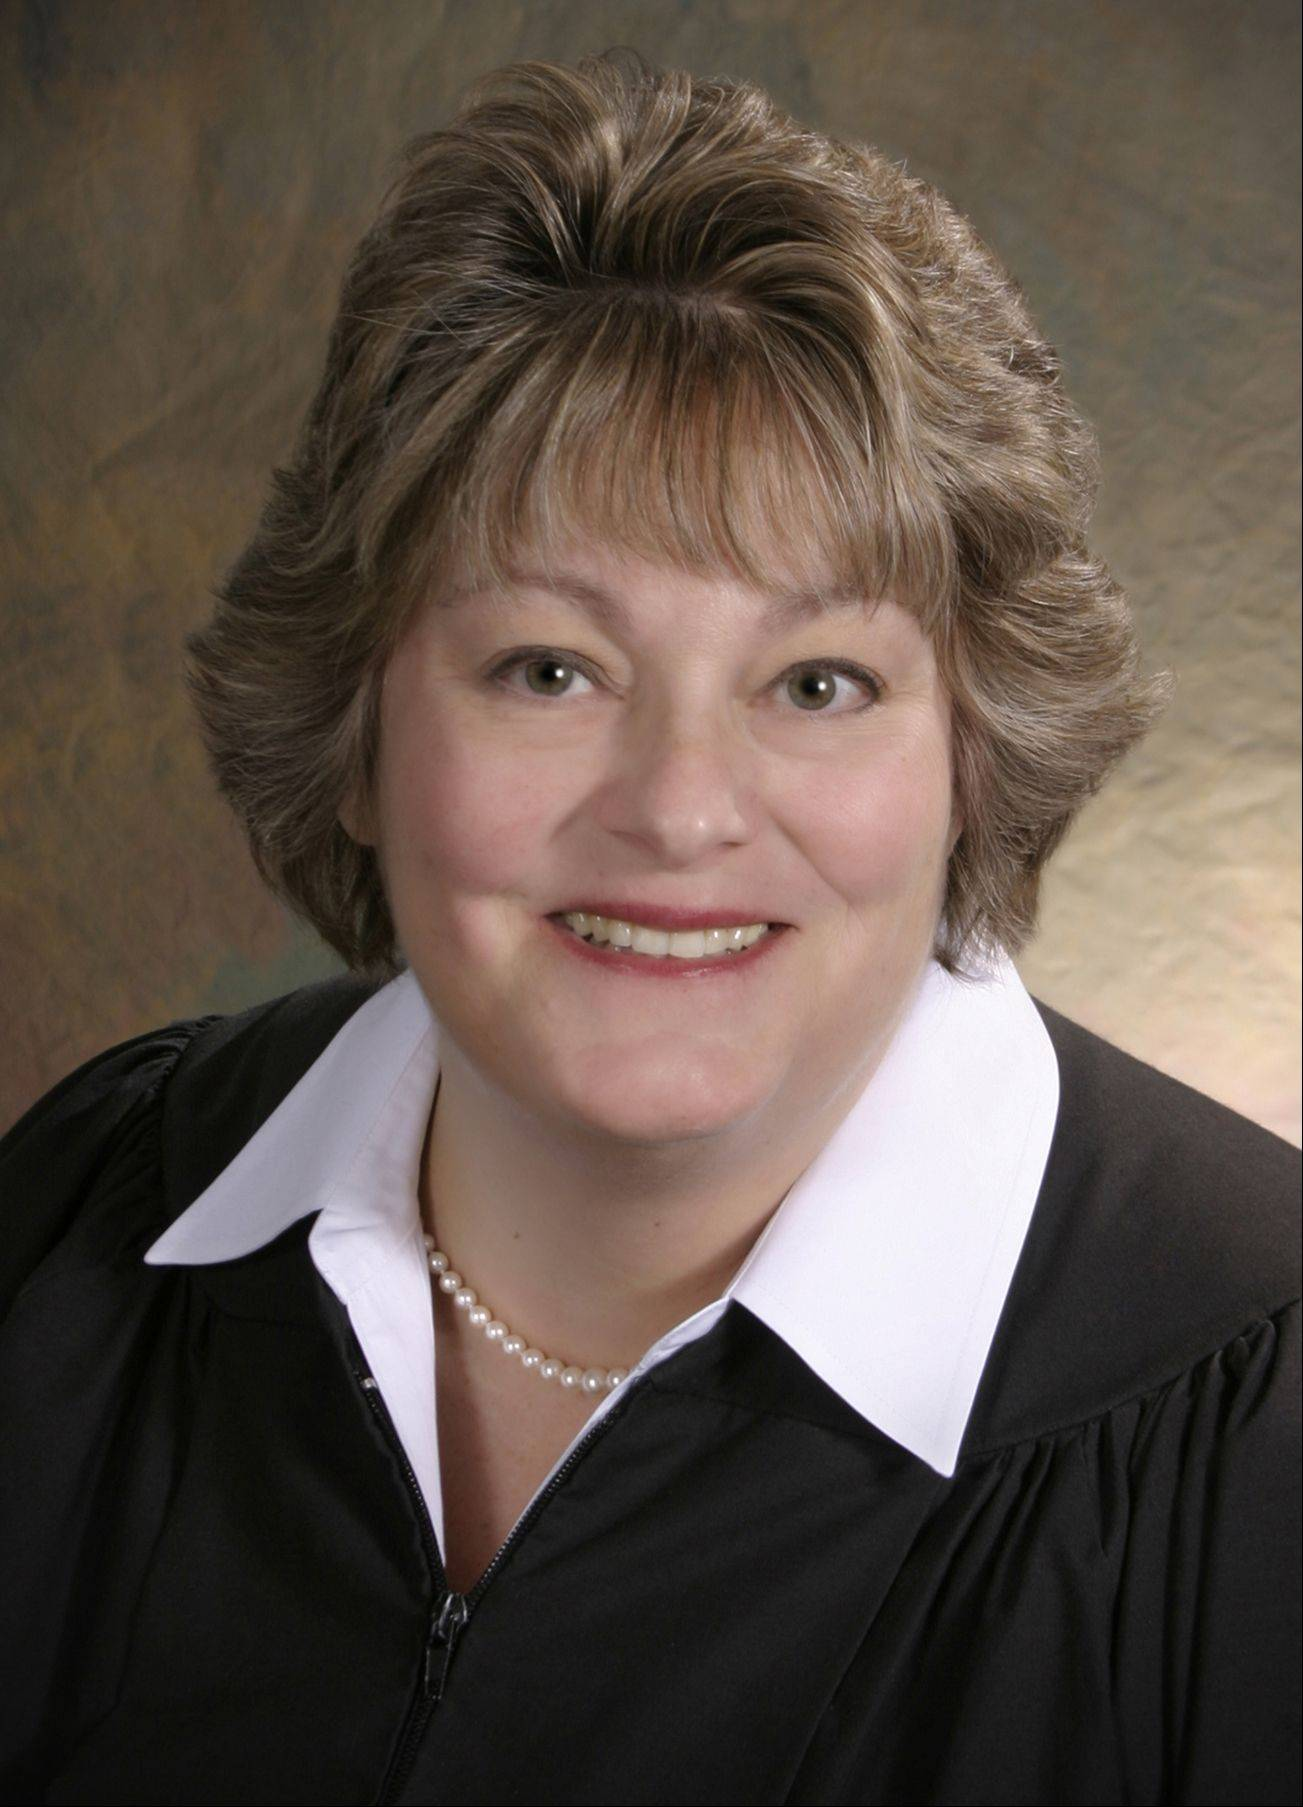 Kane County Chief Judge Judith Brawka